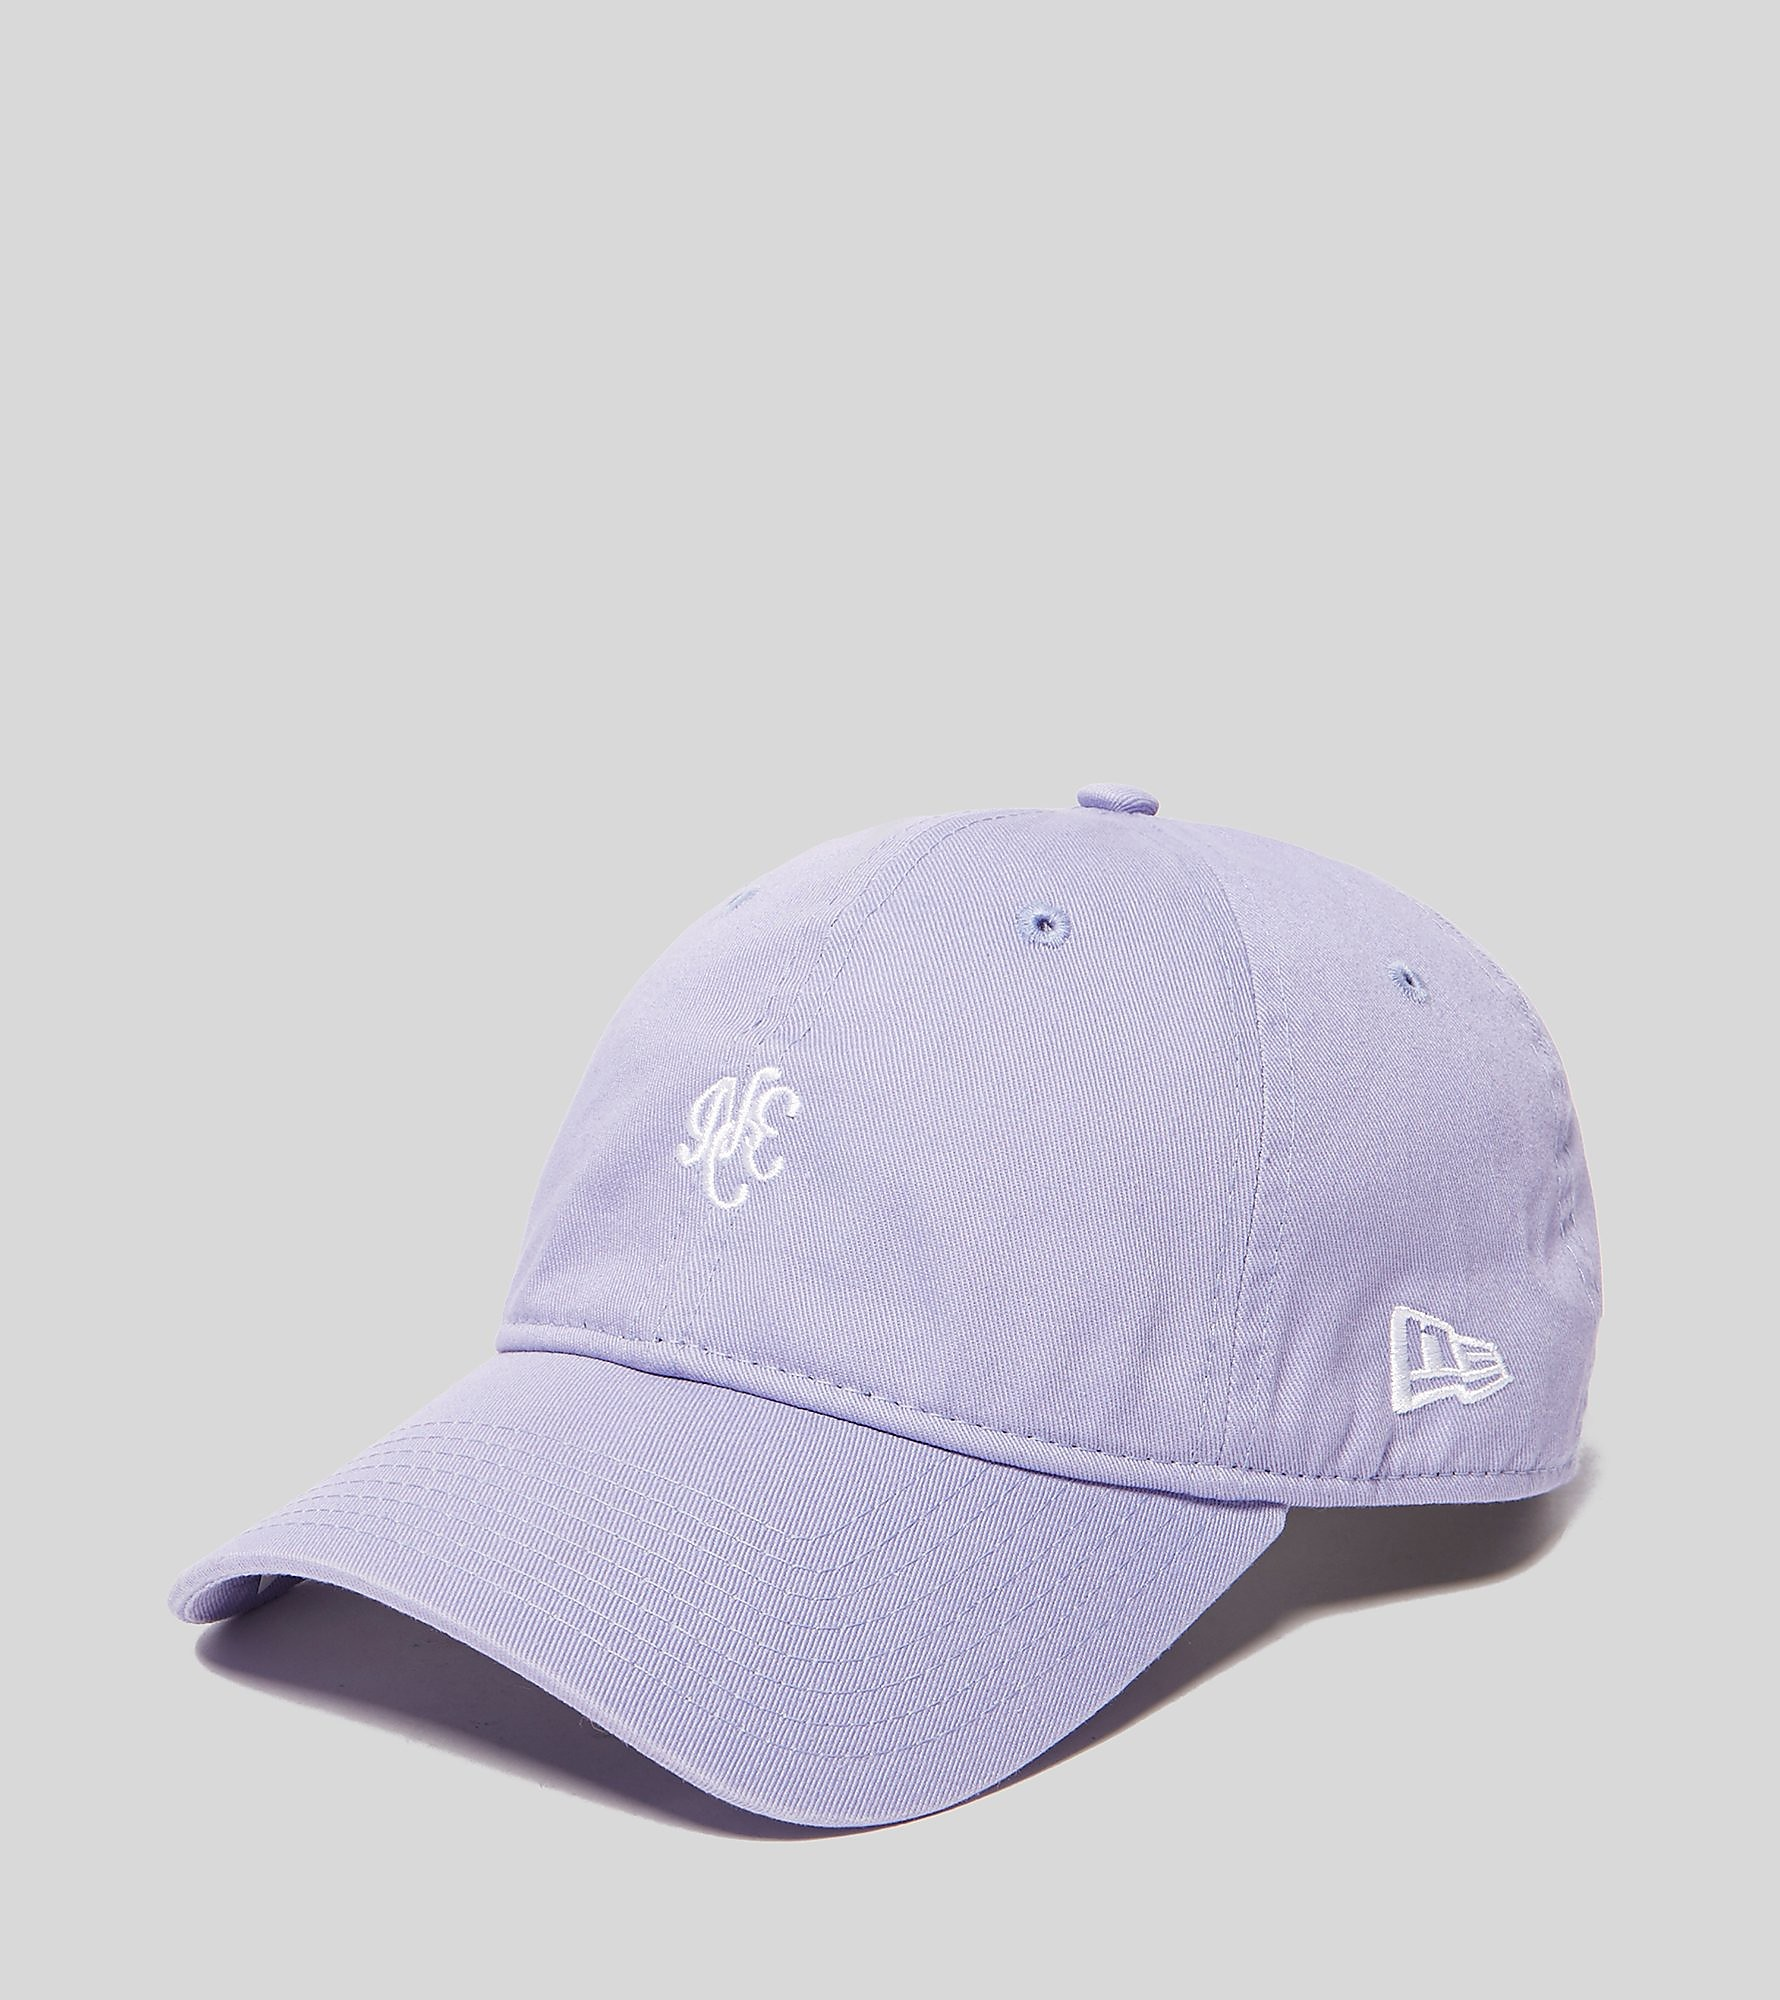 New Era 9FORTY Strapback Cap - size? Exclusive